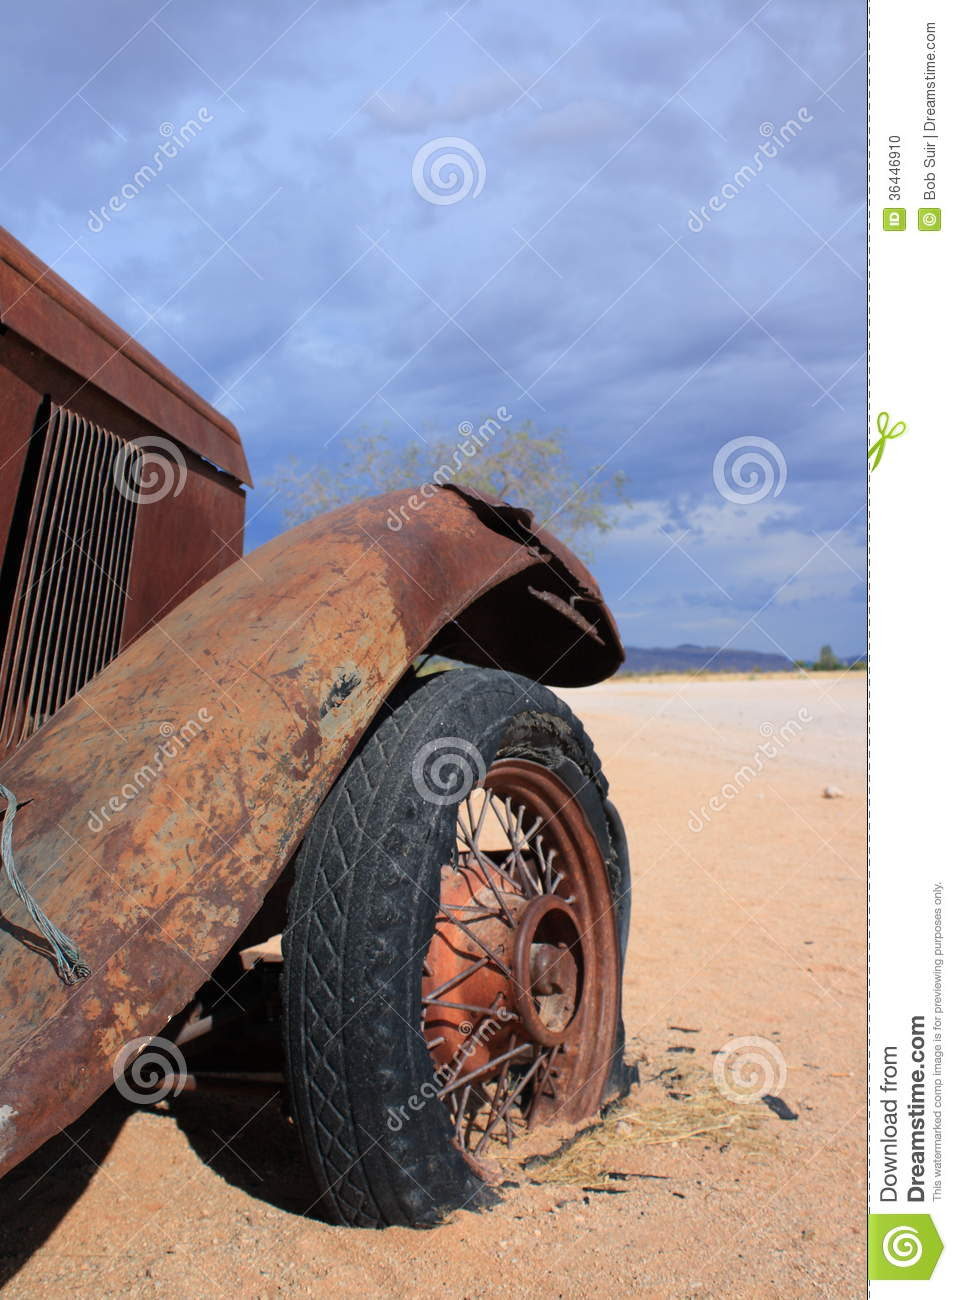 Abandoned Old Car With Flat Tire Stock Photo Image Of Finished Breakdown 36446910